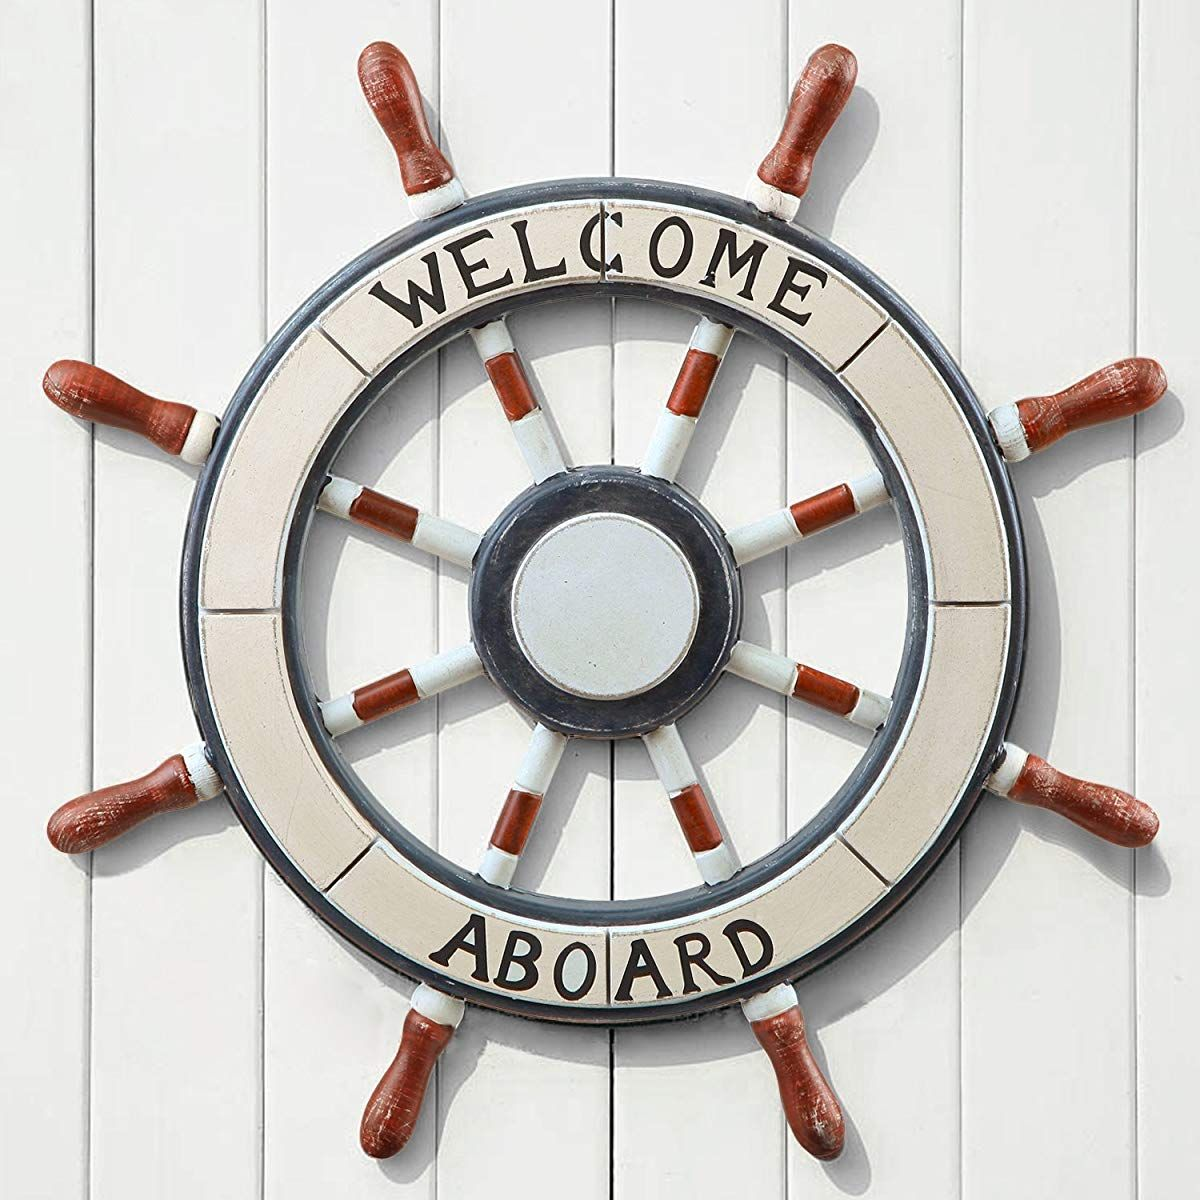 Wooden Boat Anchor With Crossbar Boat Anchor Wooden Boats Wheel Decor